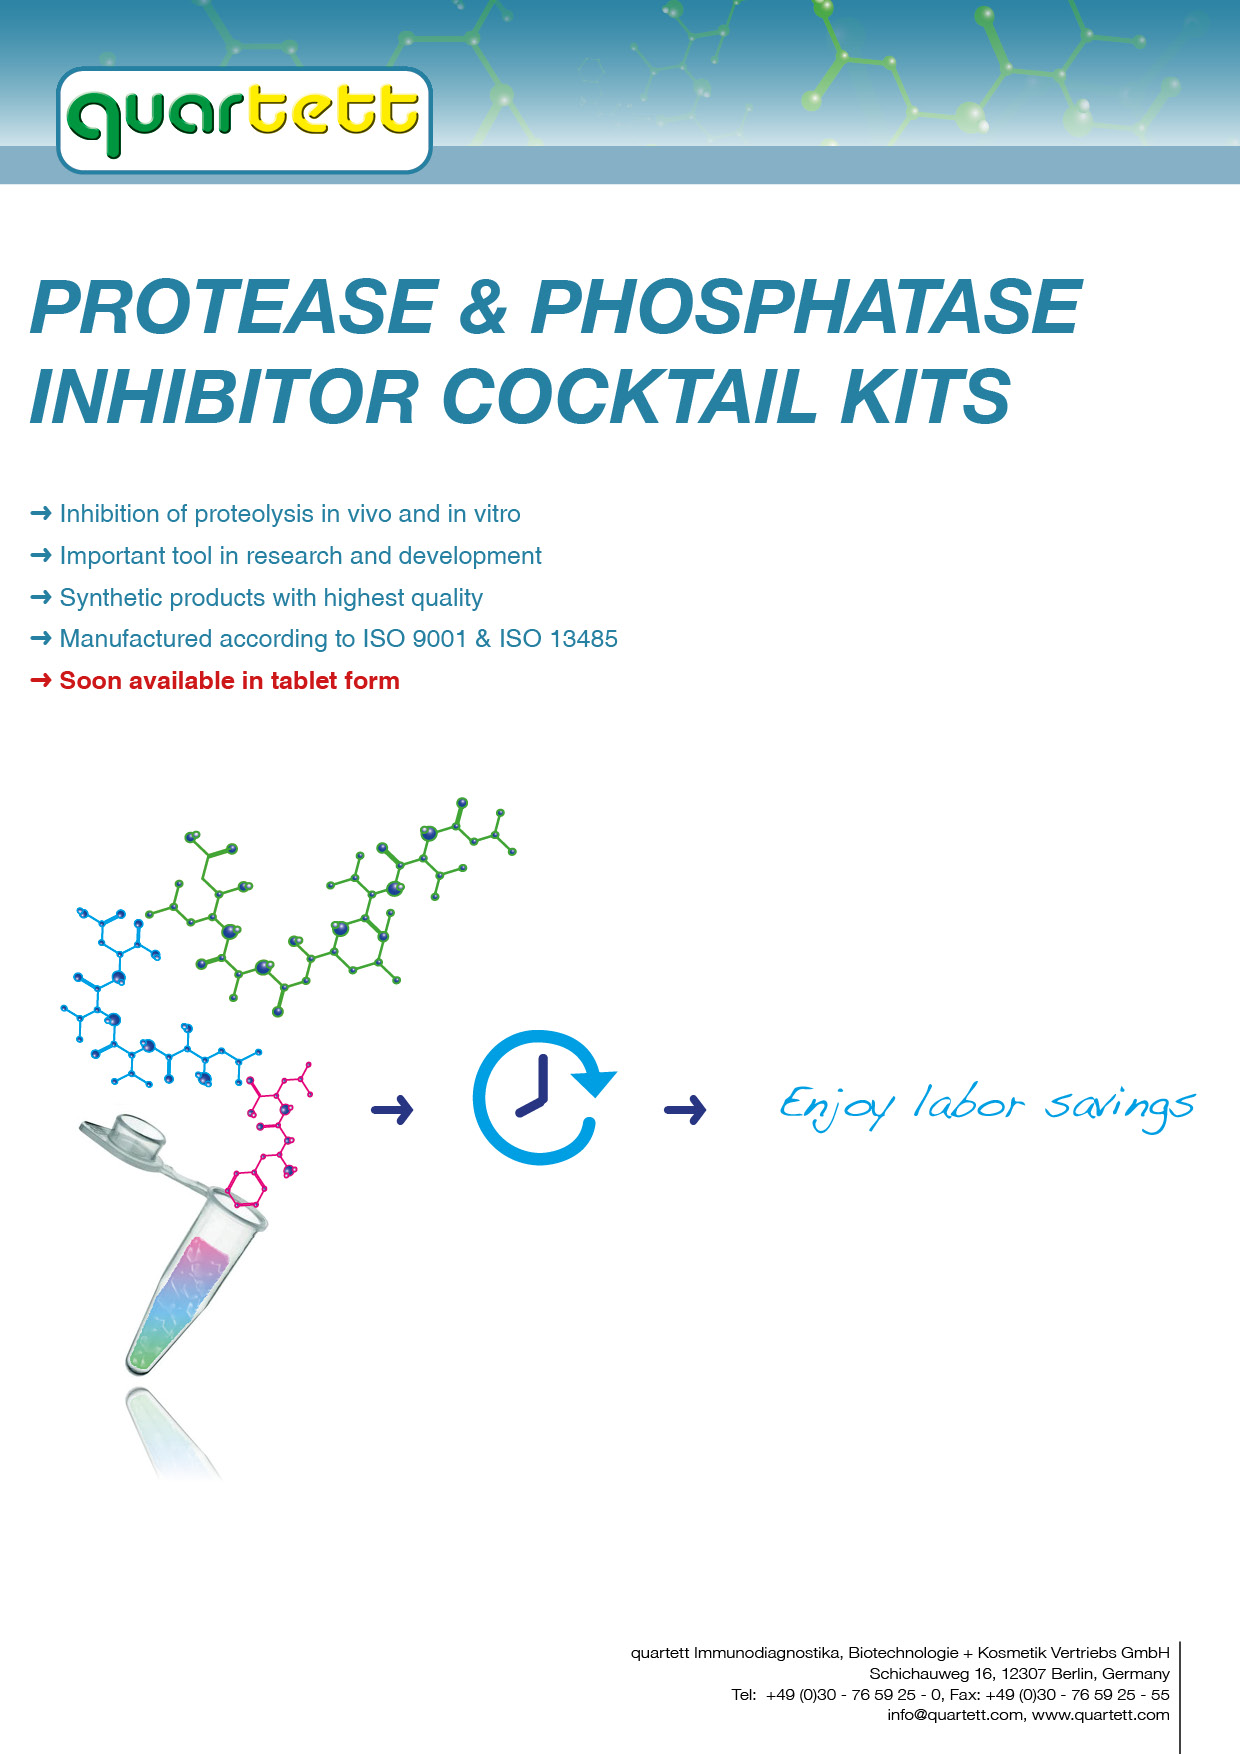 Protease & Phosphatase Inhibitor Cocktail Kits (English)